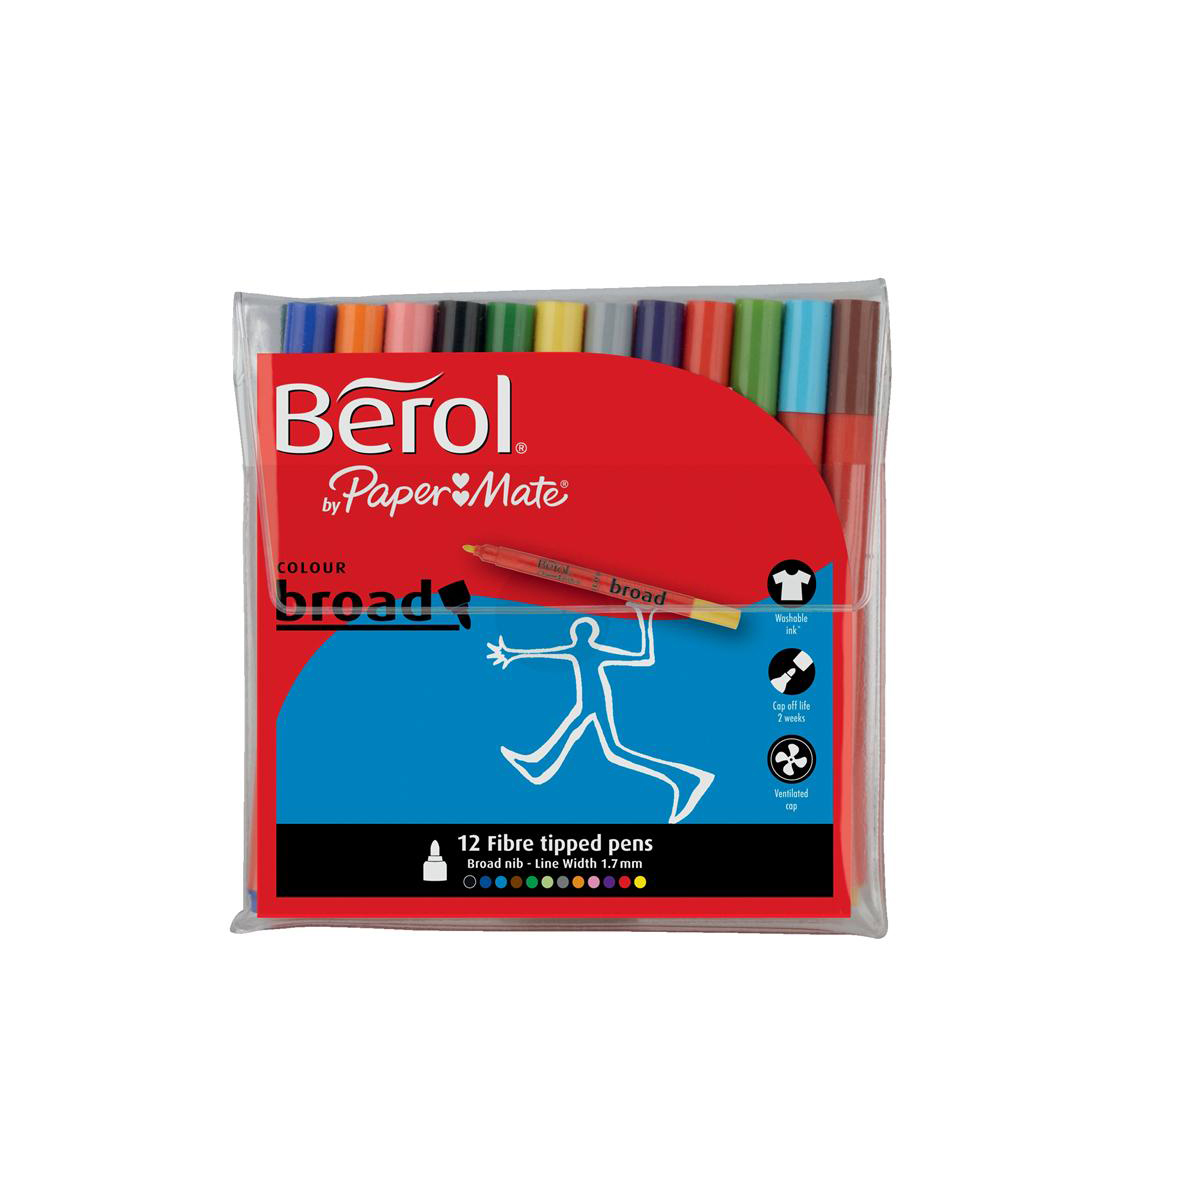 Berol Colour Broad Pens with Washable Ink 1.7mm Line Wallet Assorted Ref 2057596 [Pack 12]